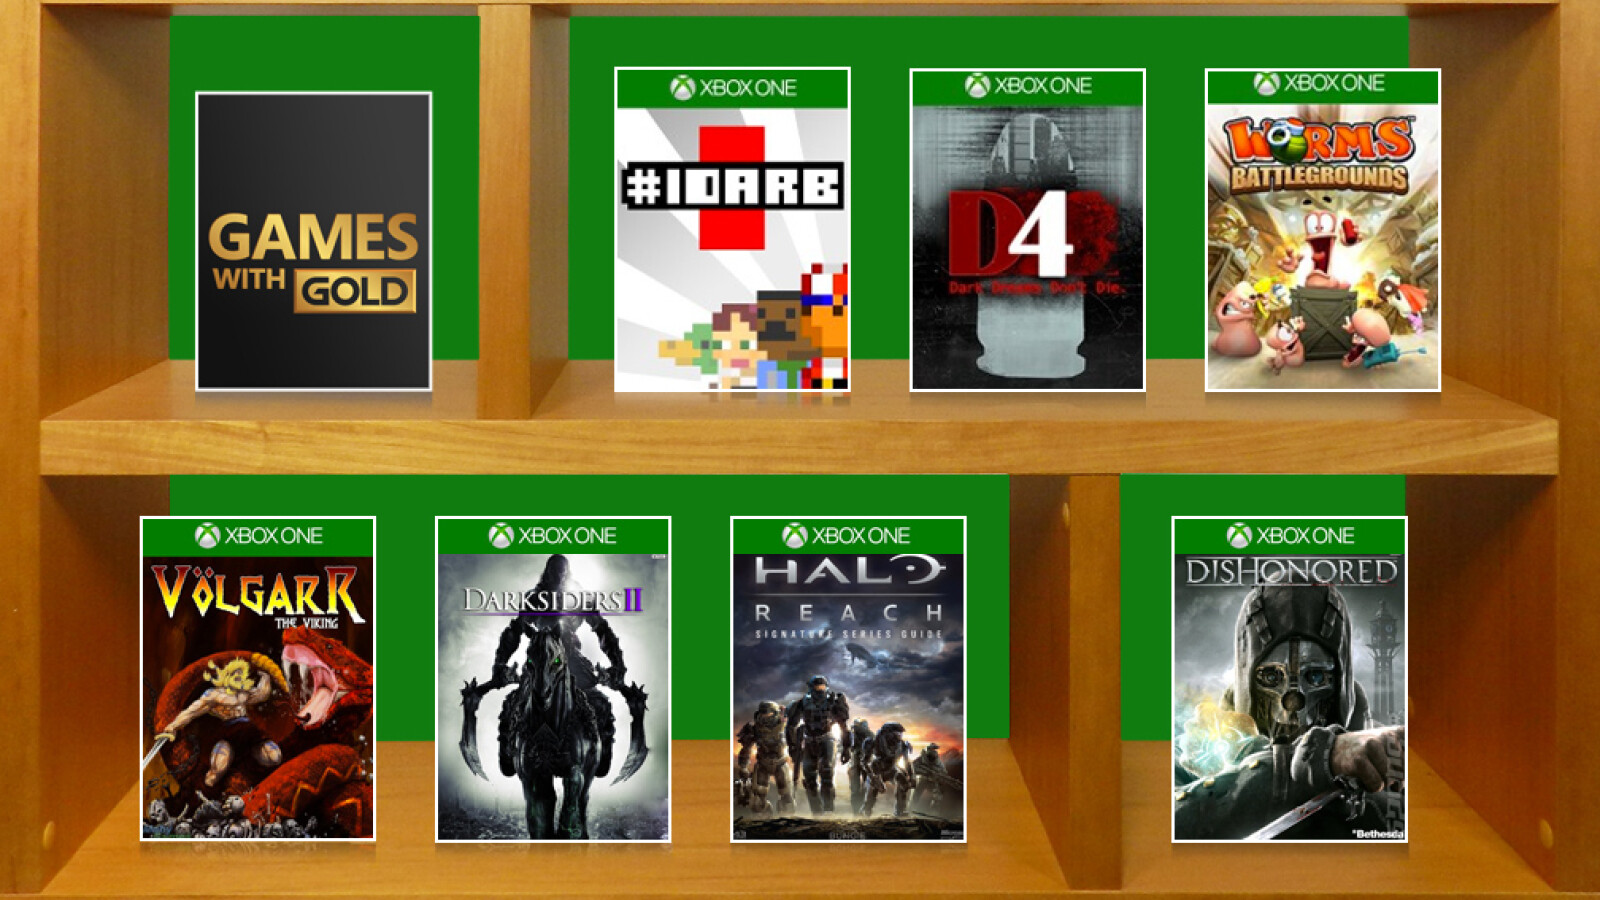 games with gold archiv alle xbox one xbox 360. Black Bedroom Furniture Sets. Home Design Ideas